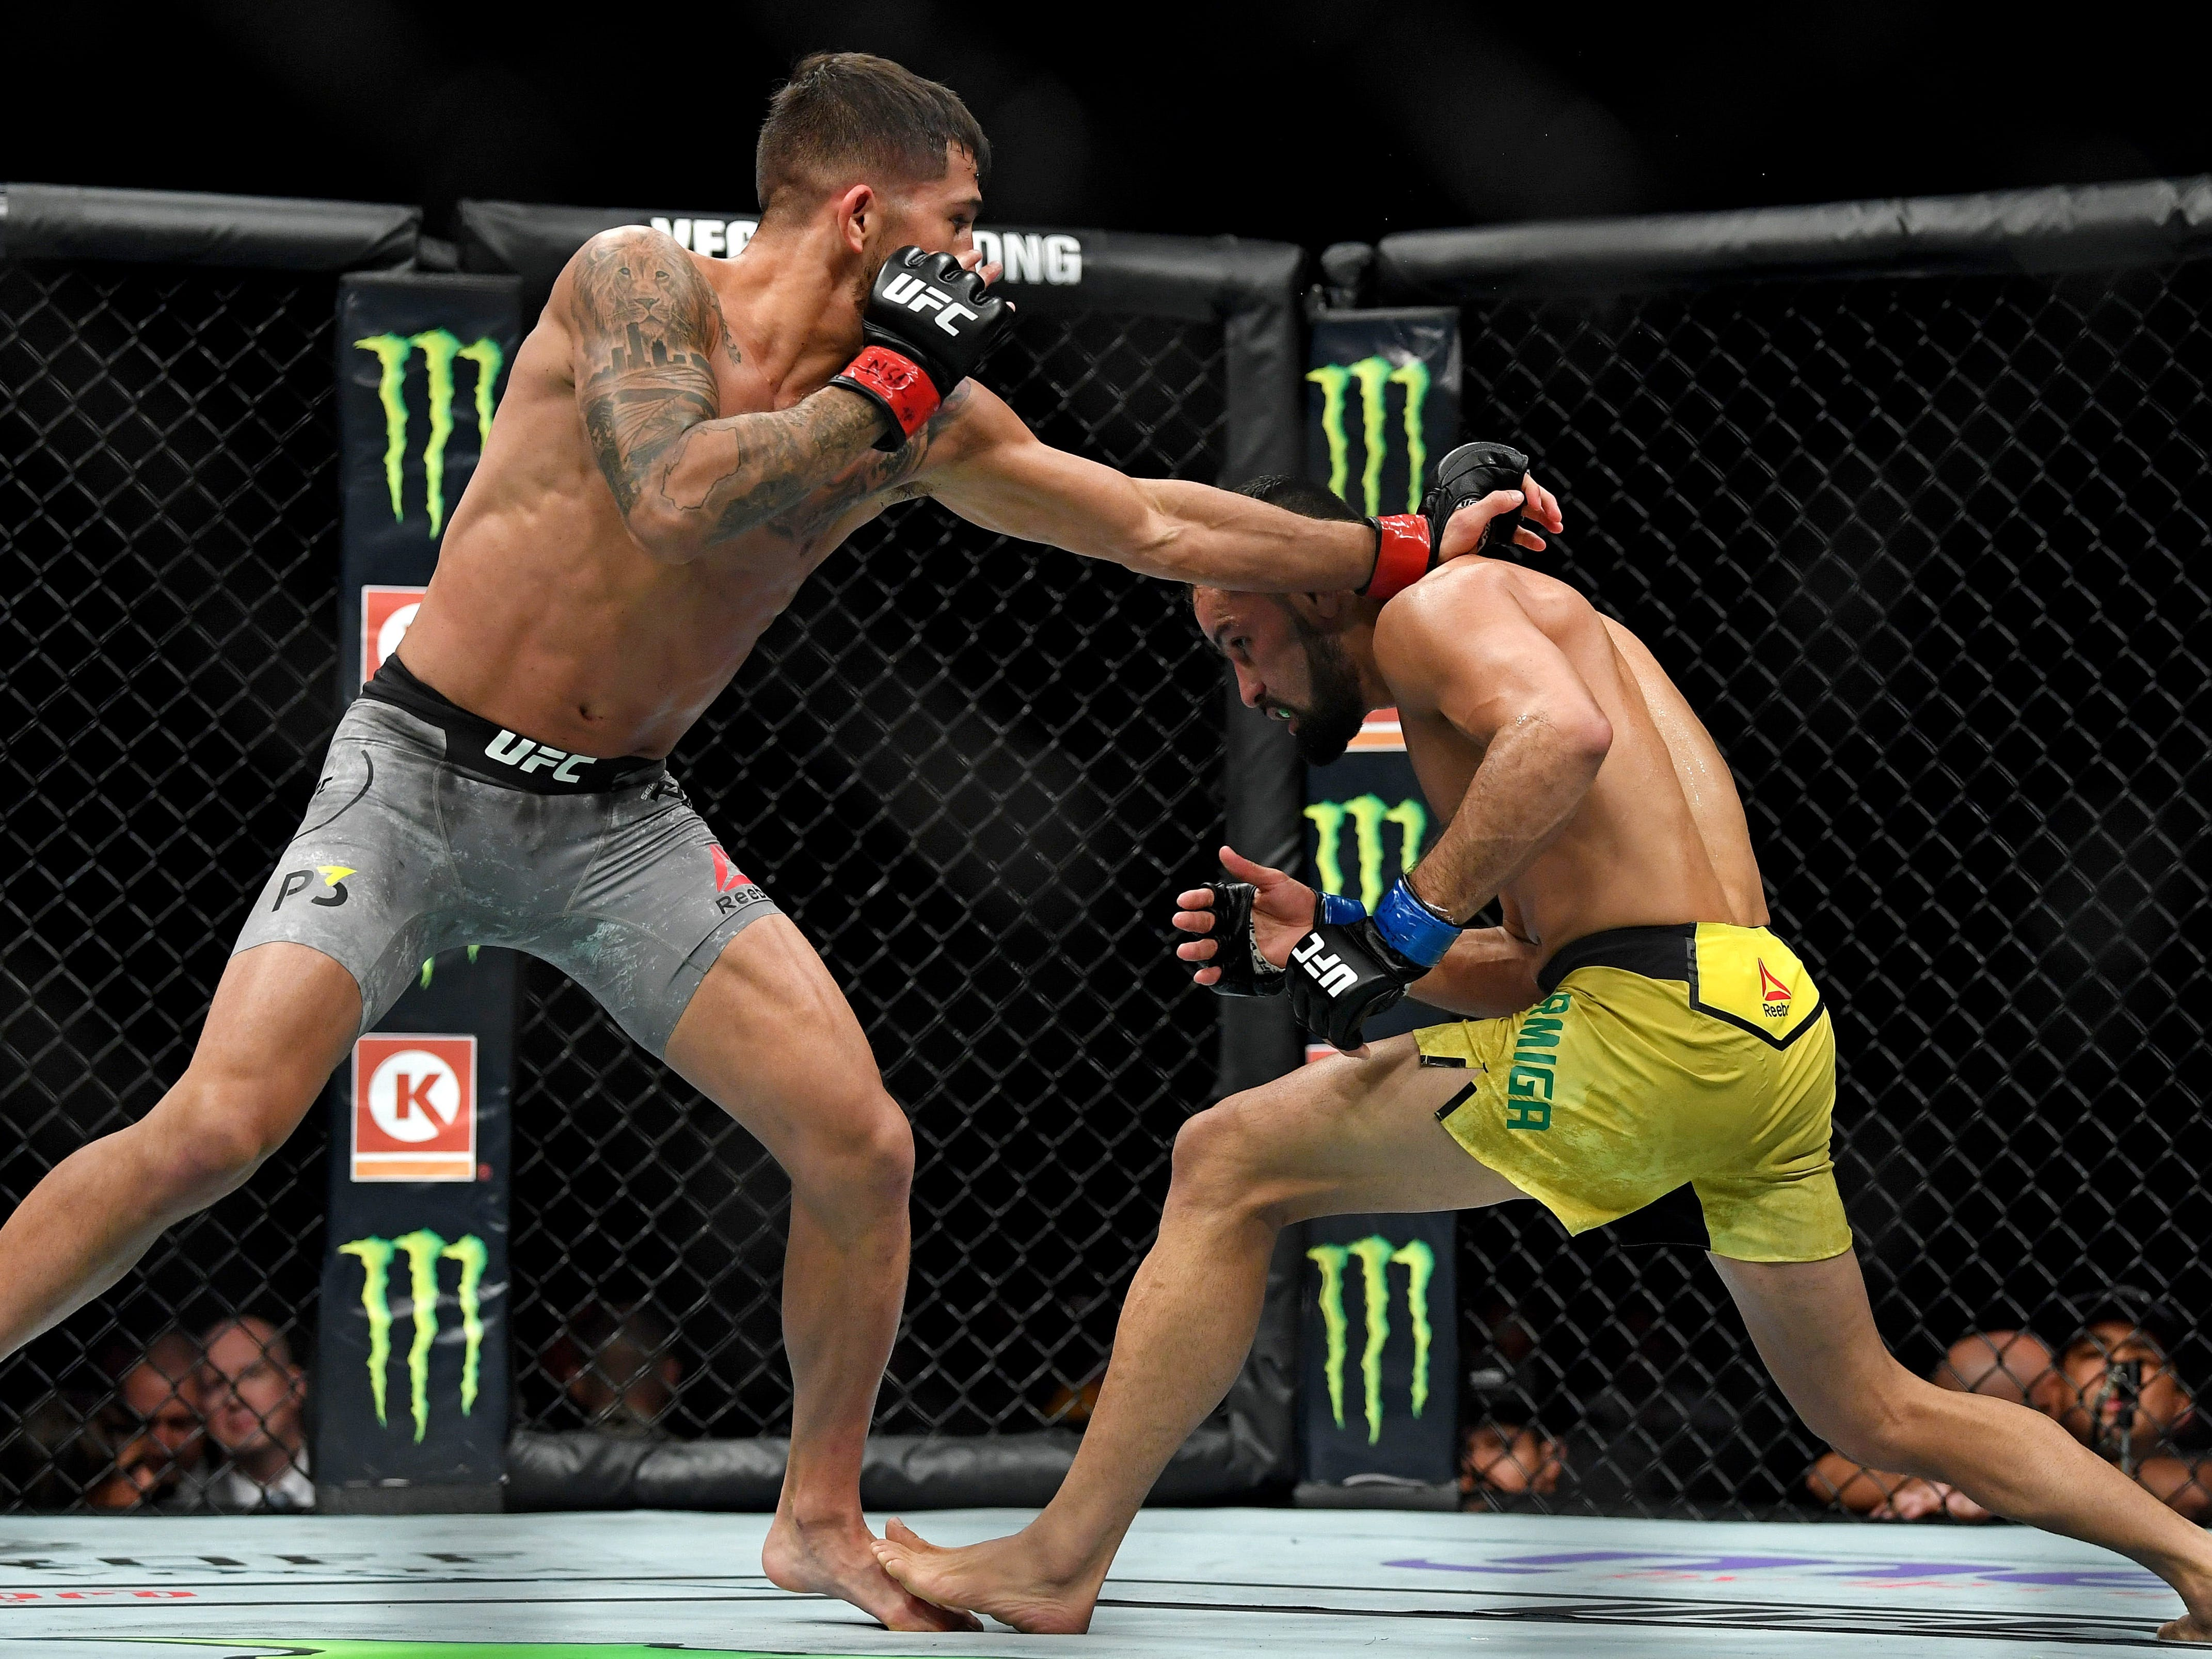 Jussier Formiga  looks to take down Sergio Pettis.